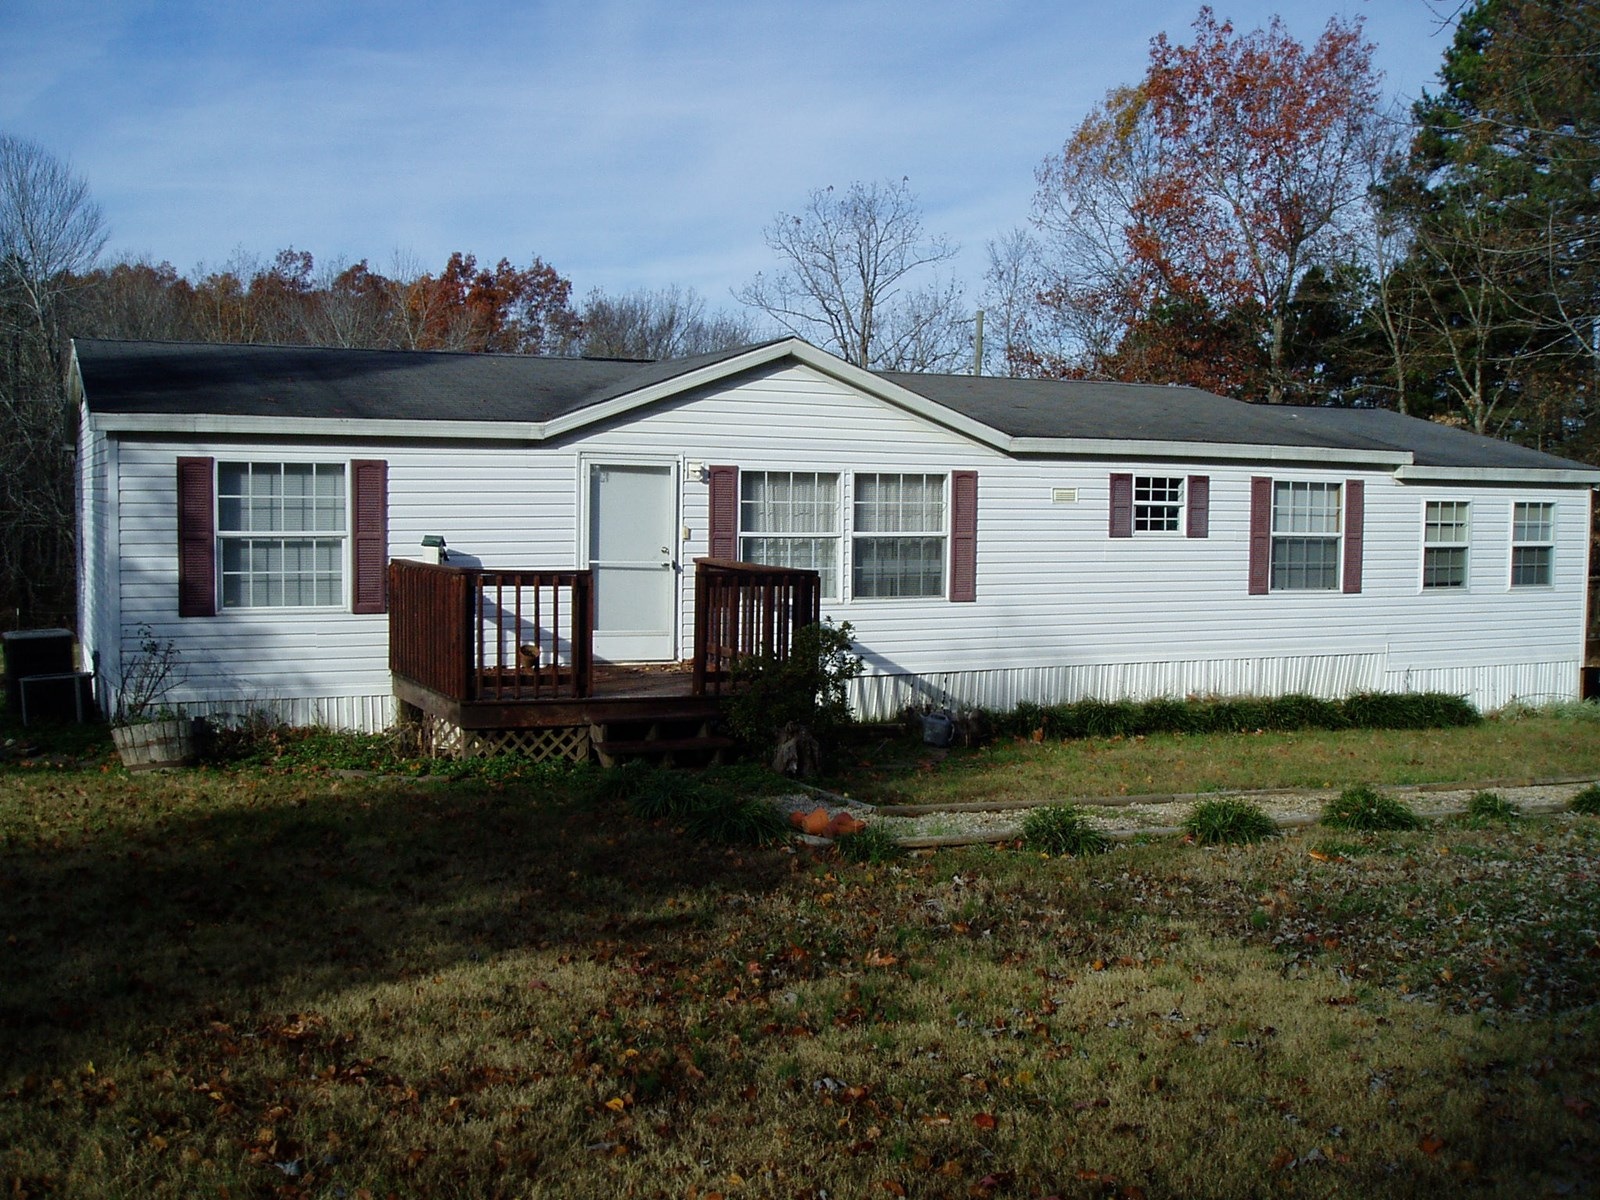 House and 20 acres for sale in S.E. MO